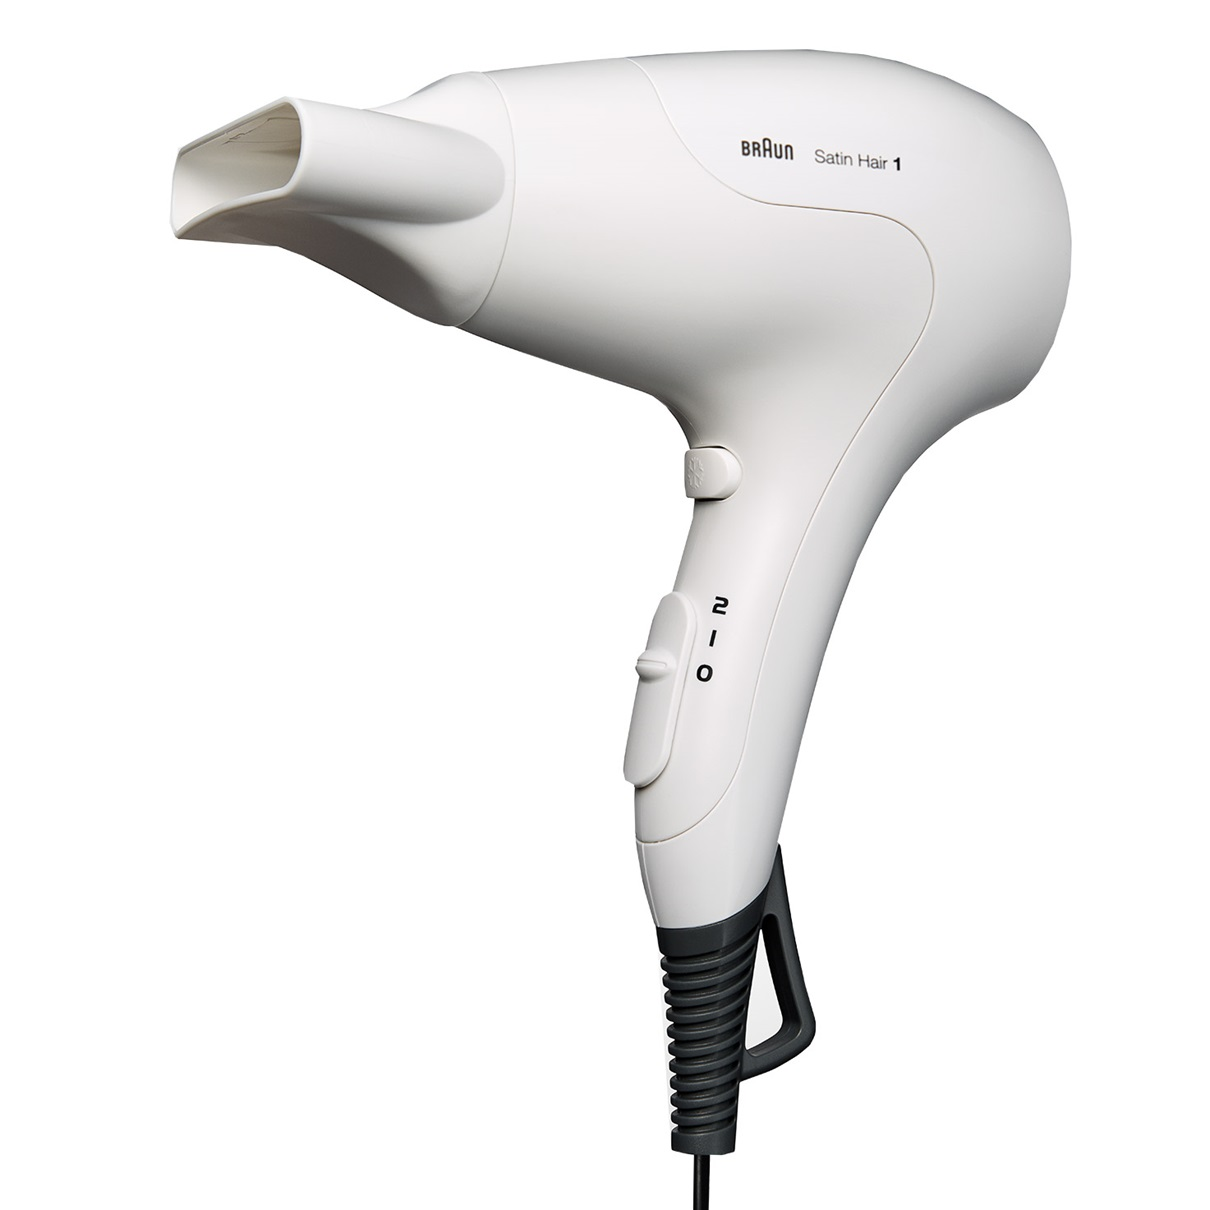 Satin Hair 1 PowerPerfection dryer HD180 half front